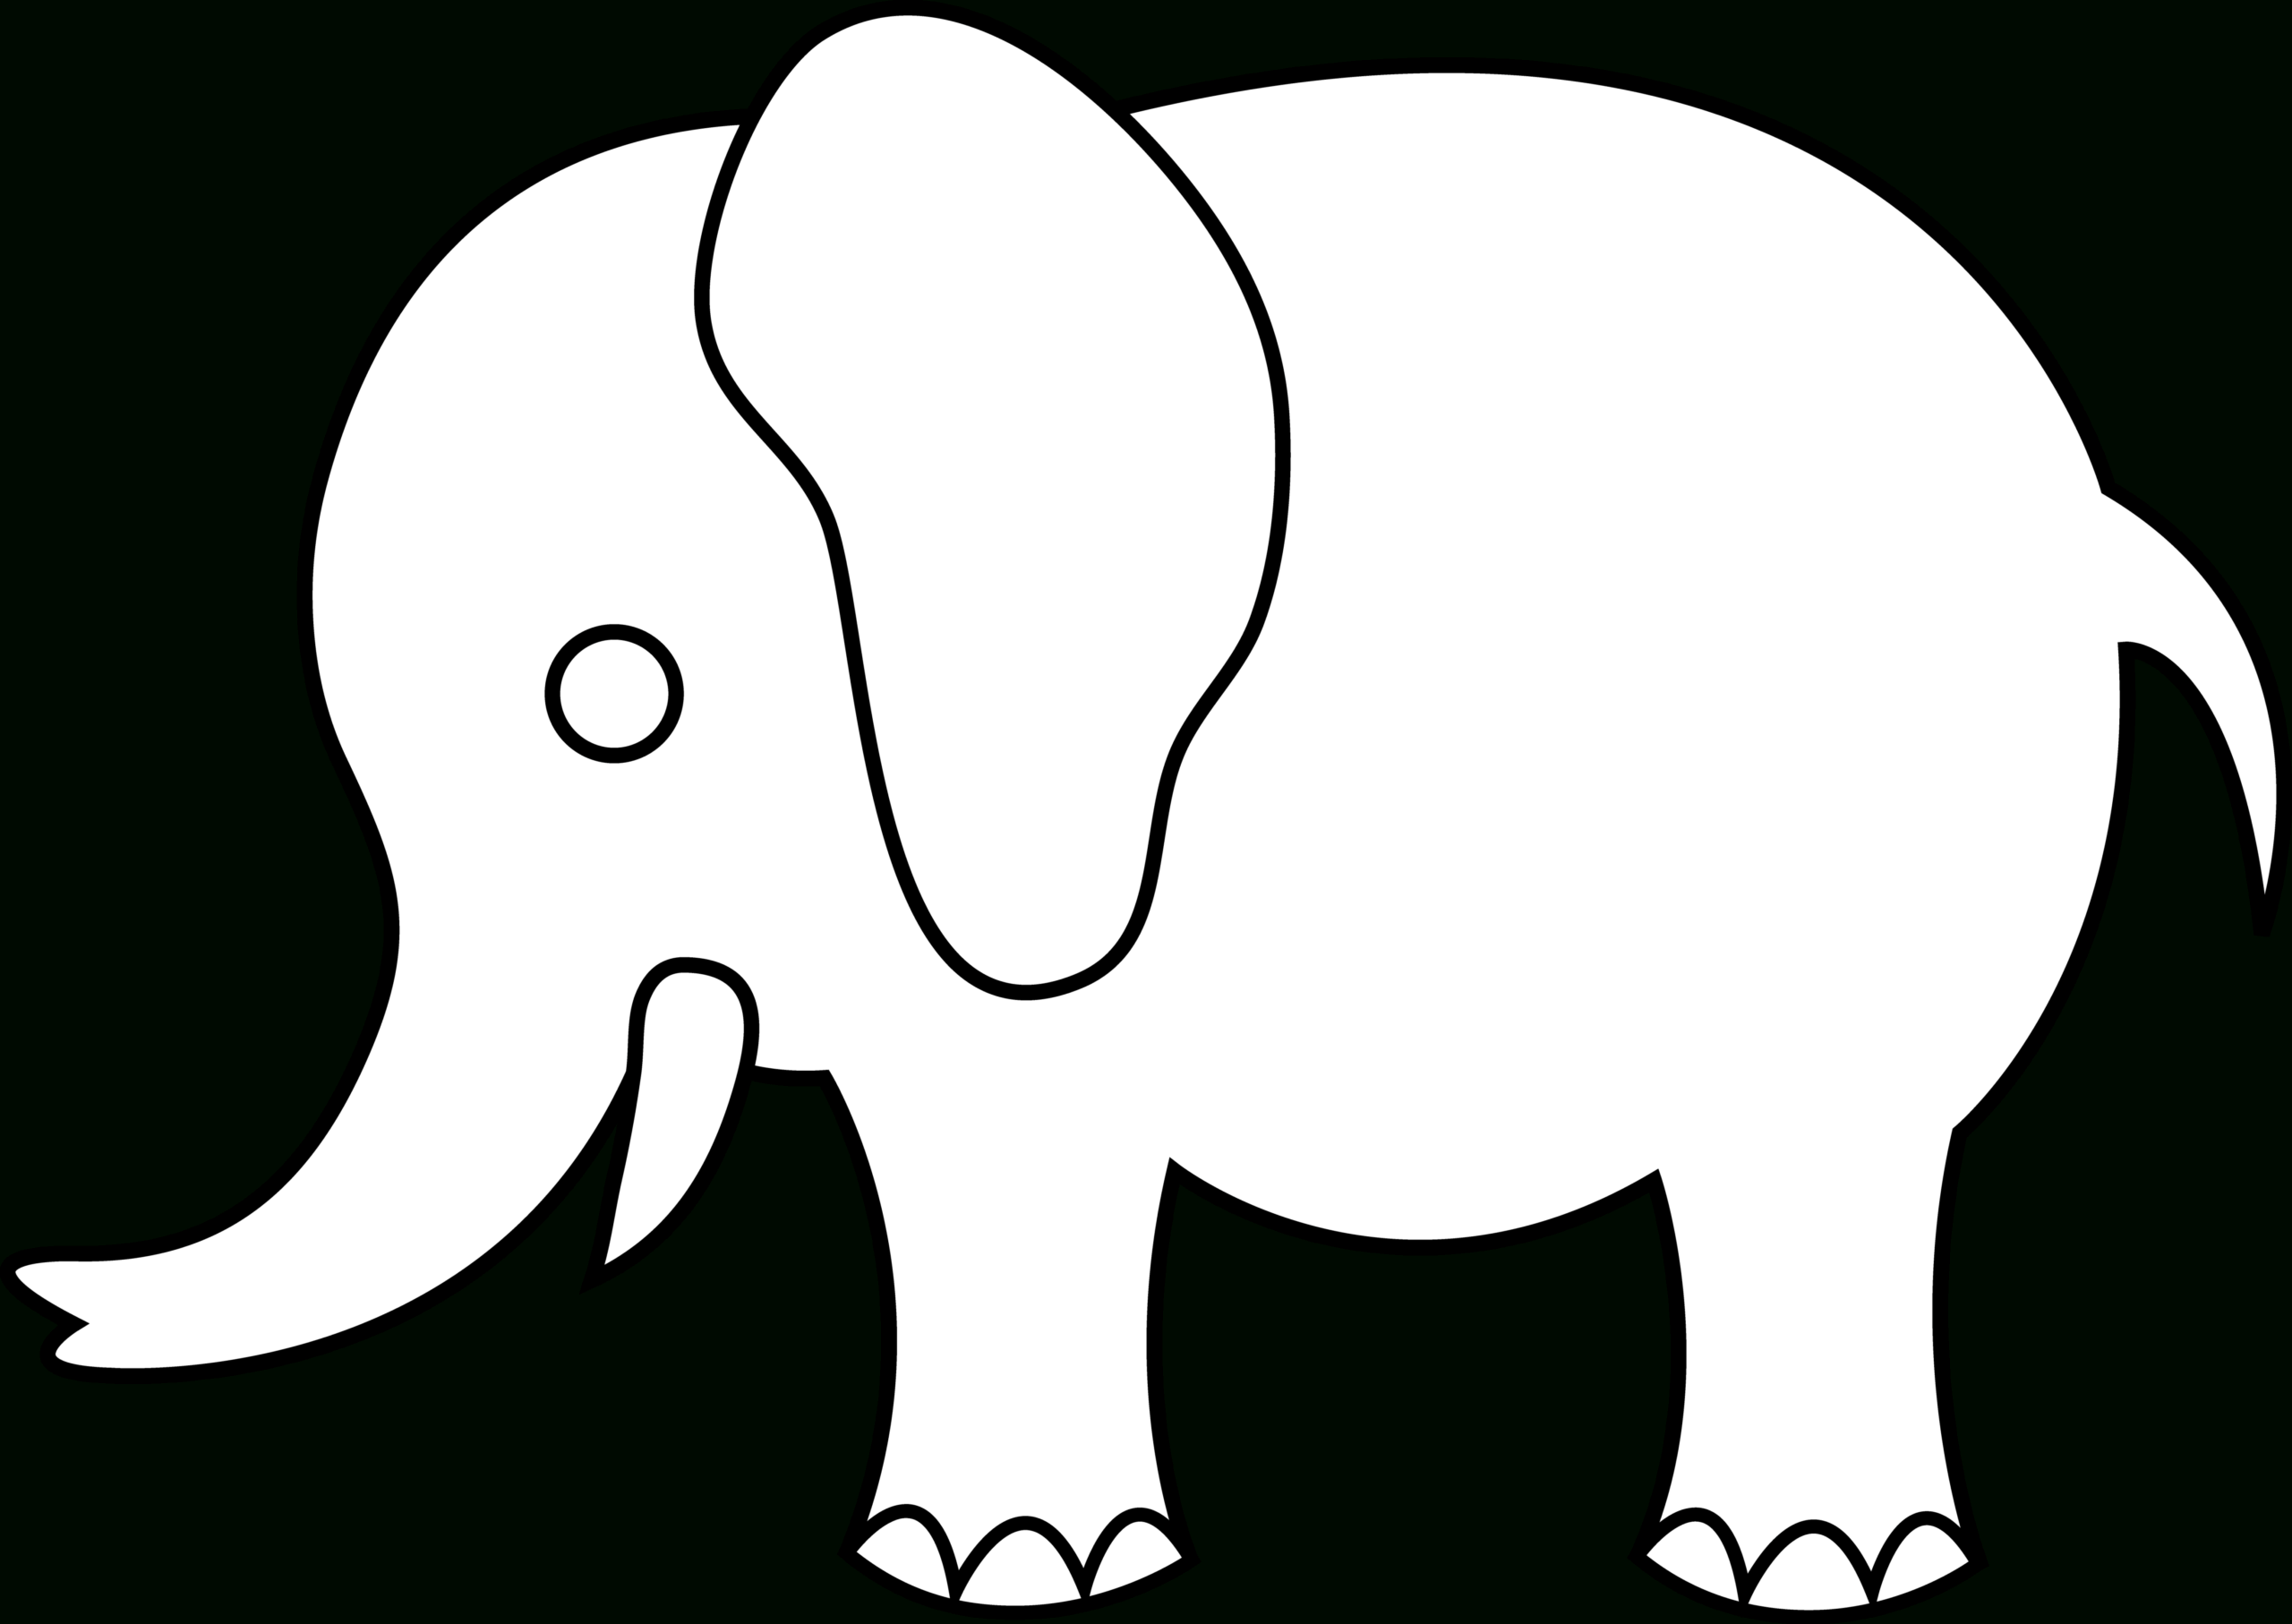 Free Elephant Outline Cliparts, Download Free Clip Art, Free Intended For Blank Elephant Template